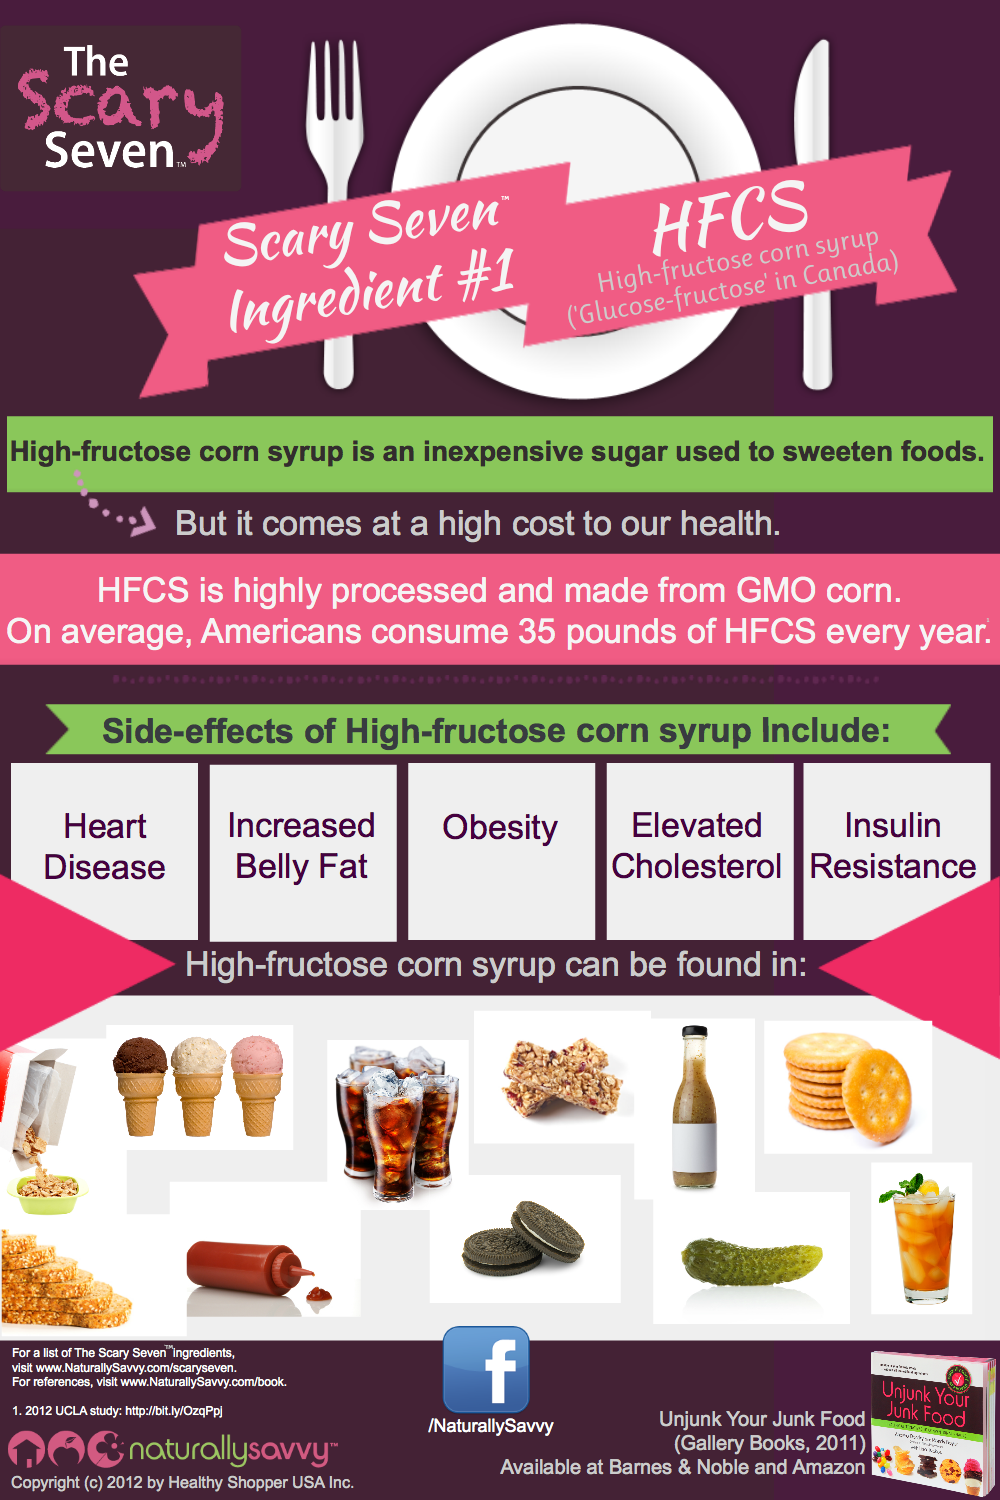 10 Toxins Worse than High Fructose Corn Syrup advise